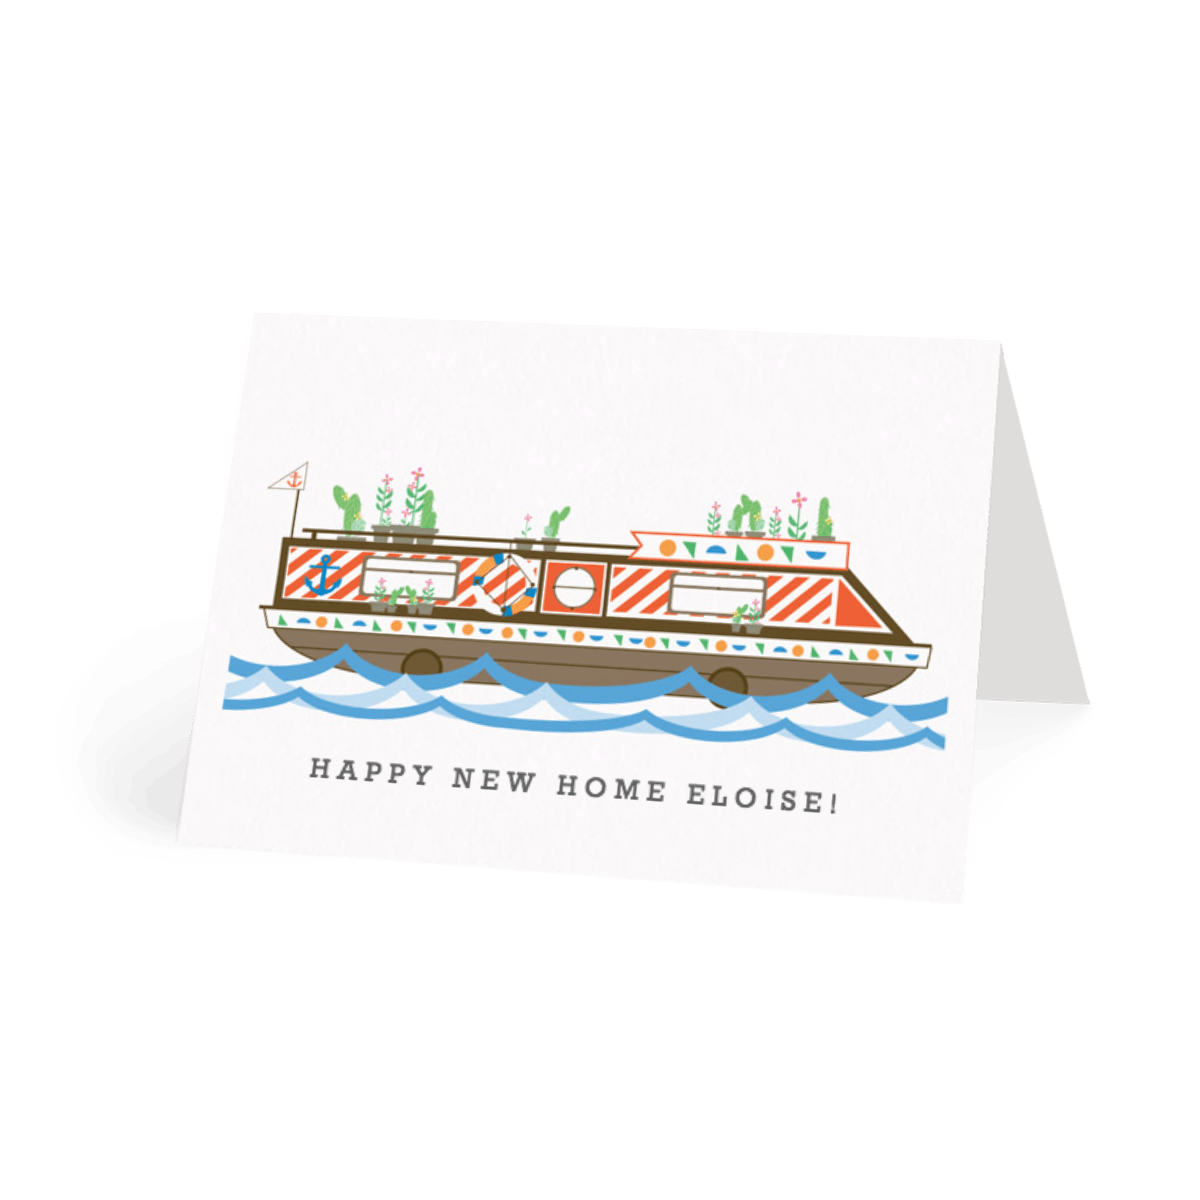 Https%3a%2f%2fwww.papier.com%2fproduct image%2f5433%2f14%2fstriped houseboat 1414 front 1458845230.png?ixlib=rb 1.1